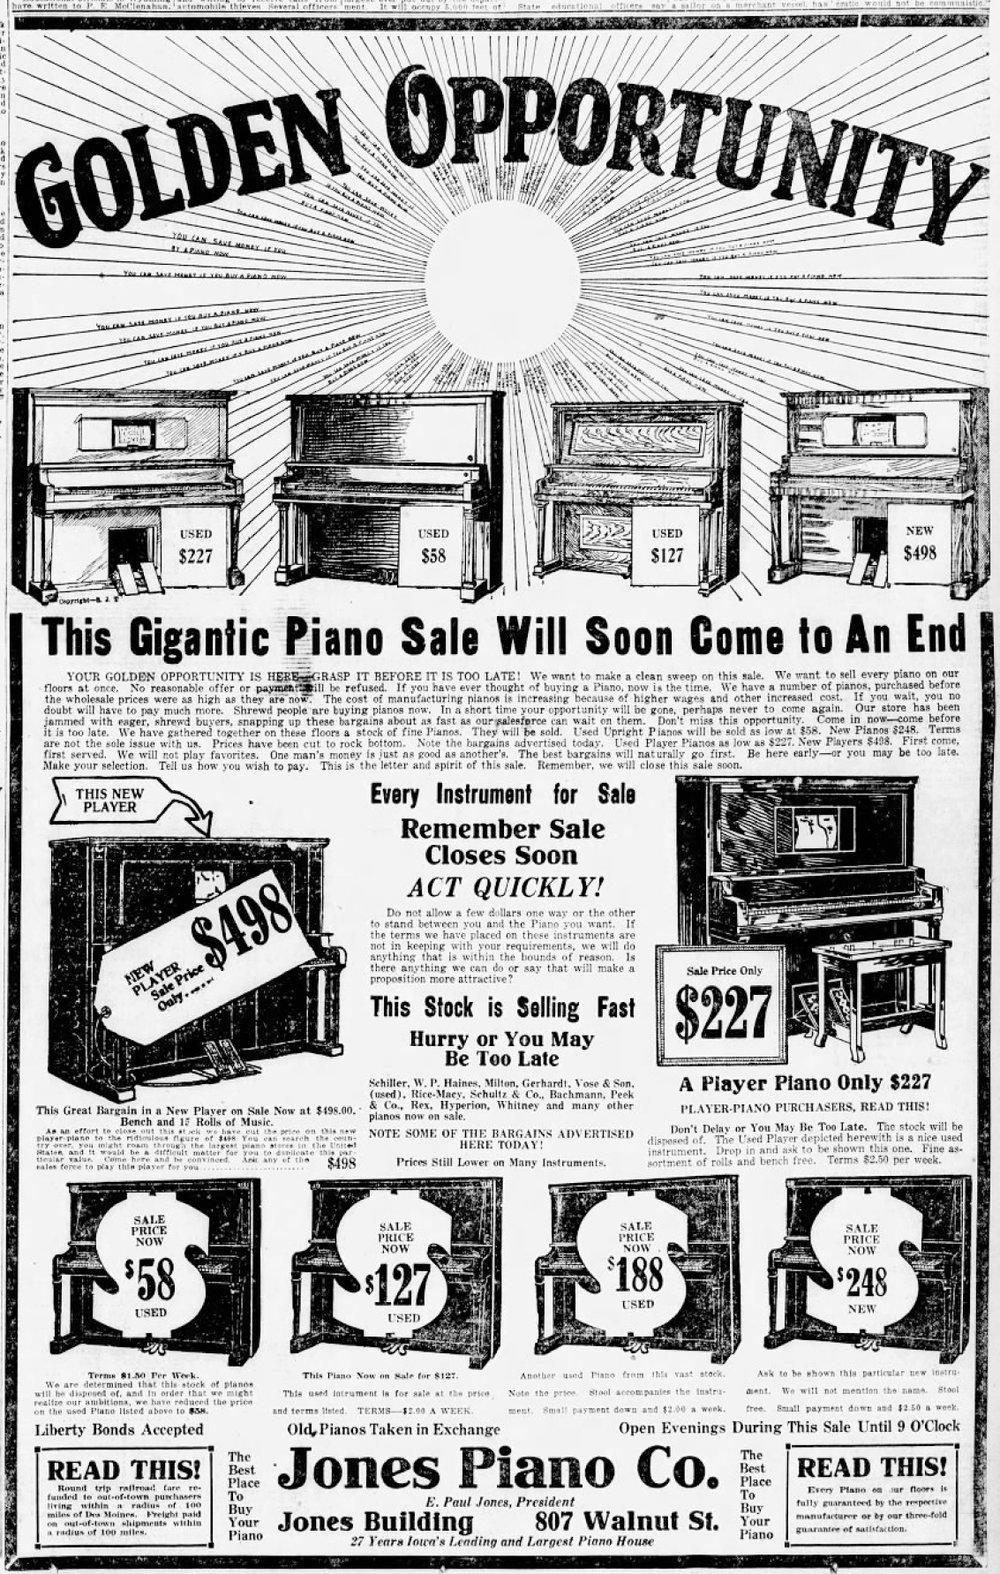 Golden Opportunity 1920.jpg